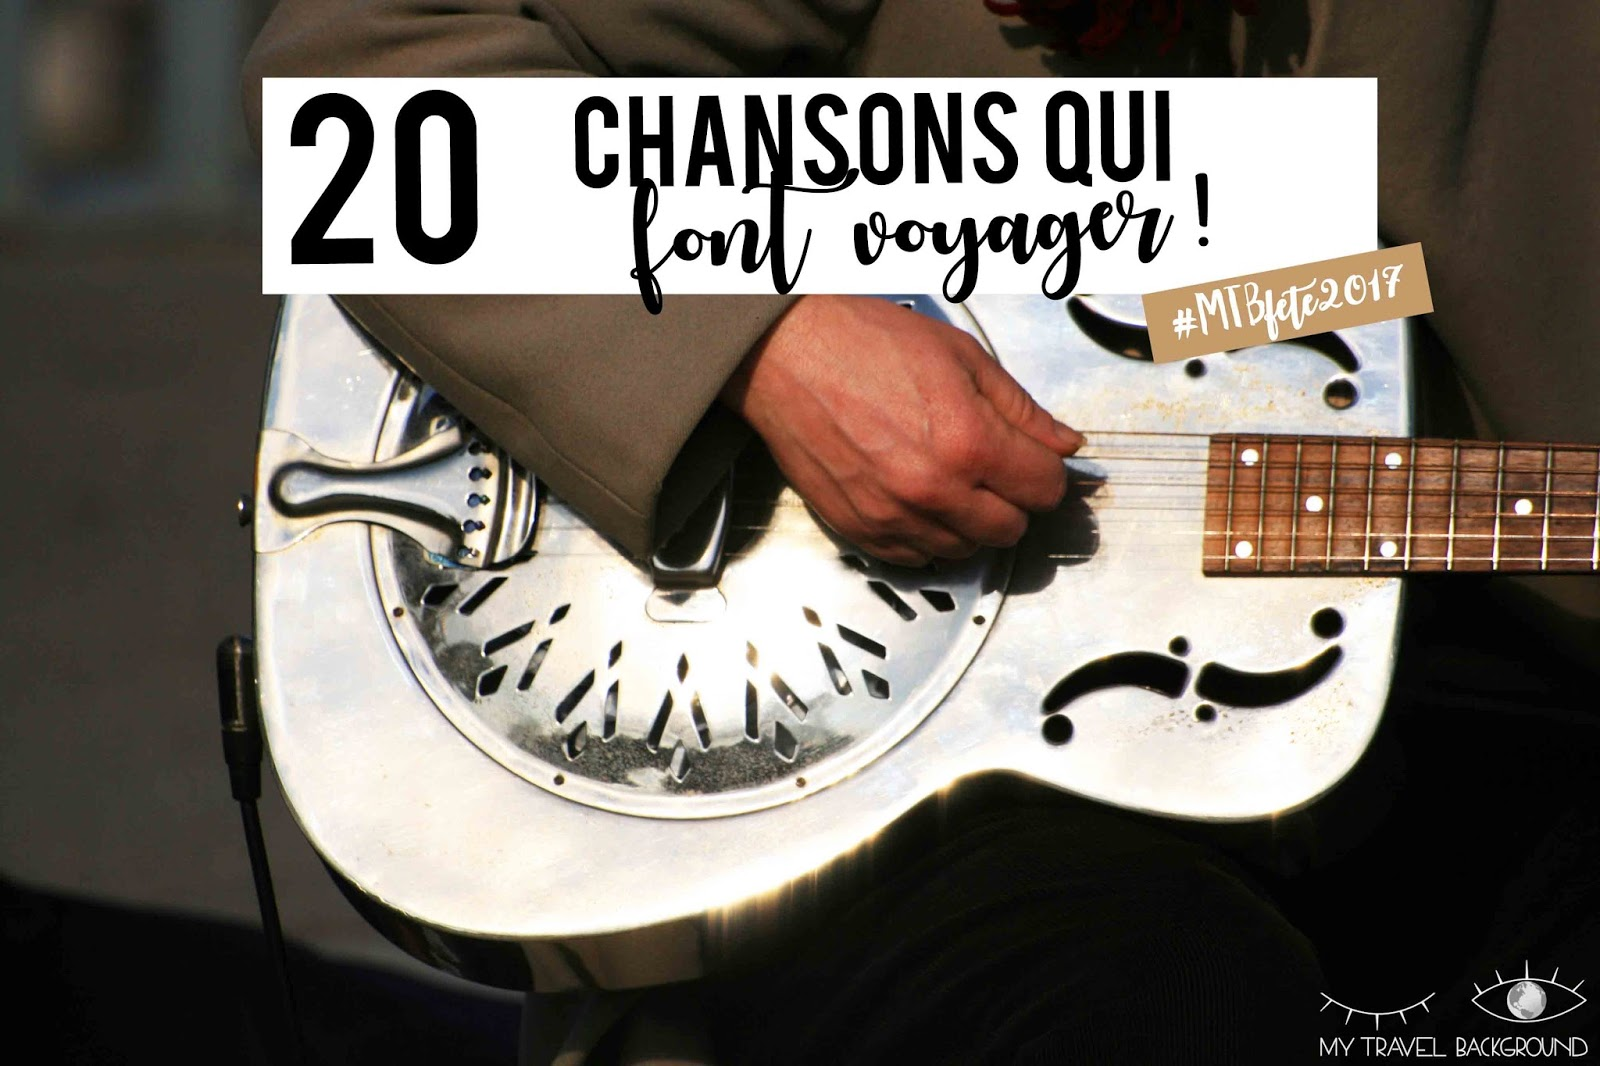 My Travel Background : 20 chansons qui font voyager